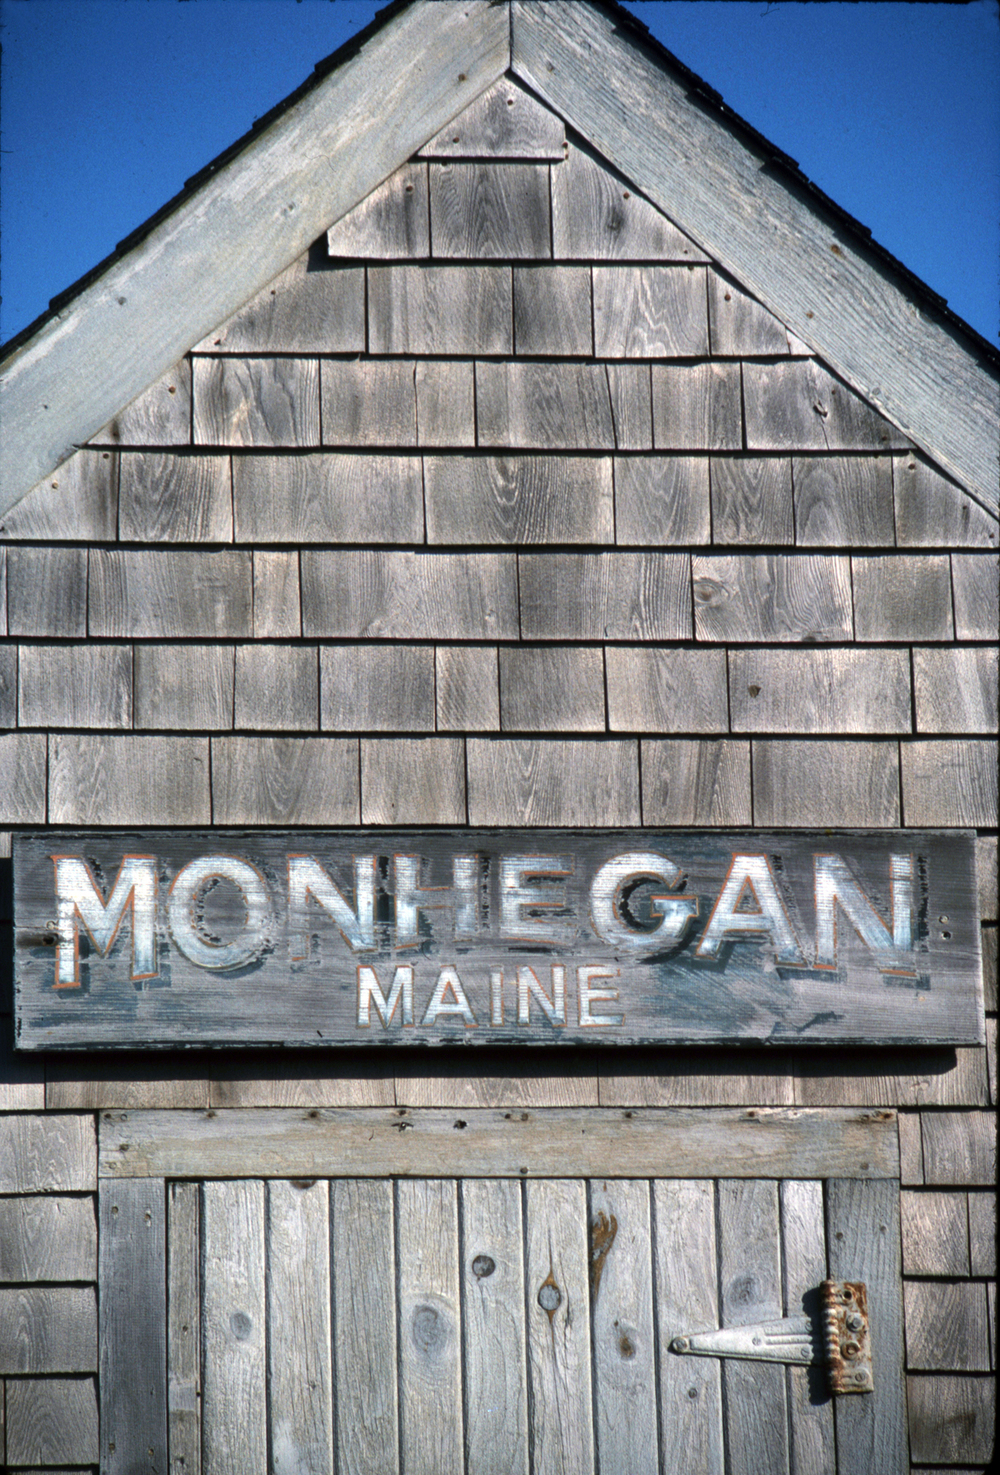 Welcome to Monhegan!